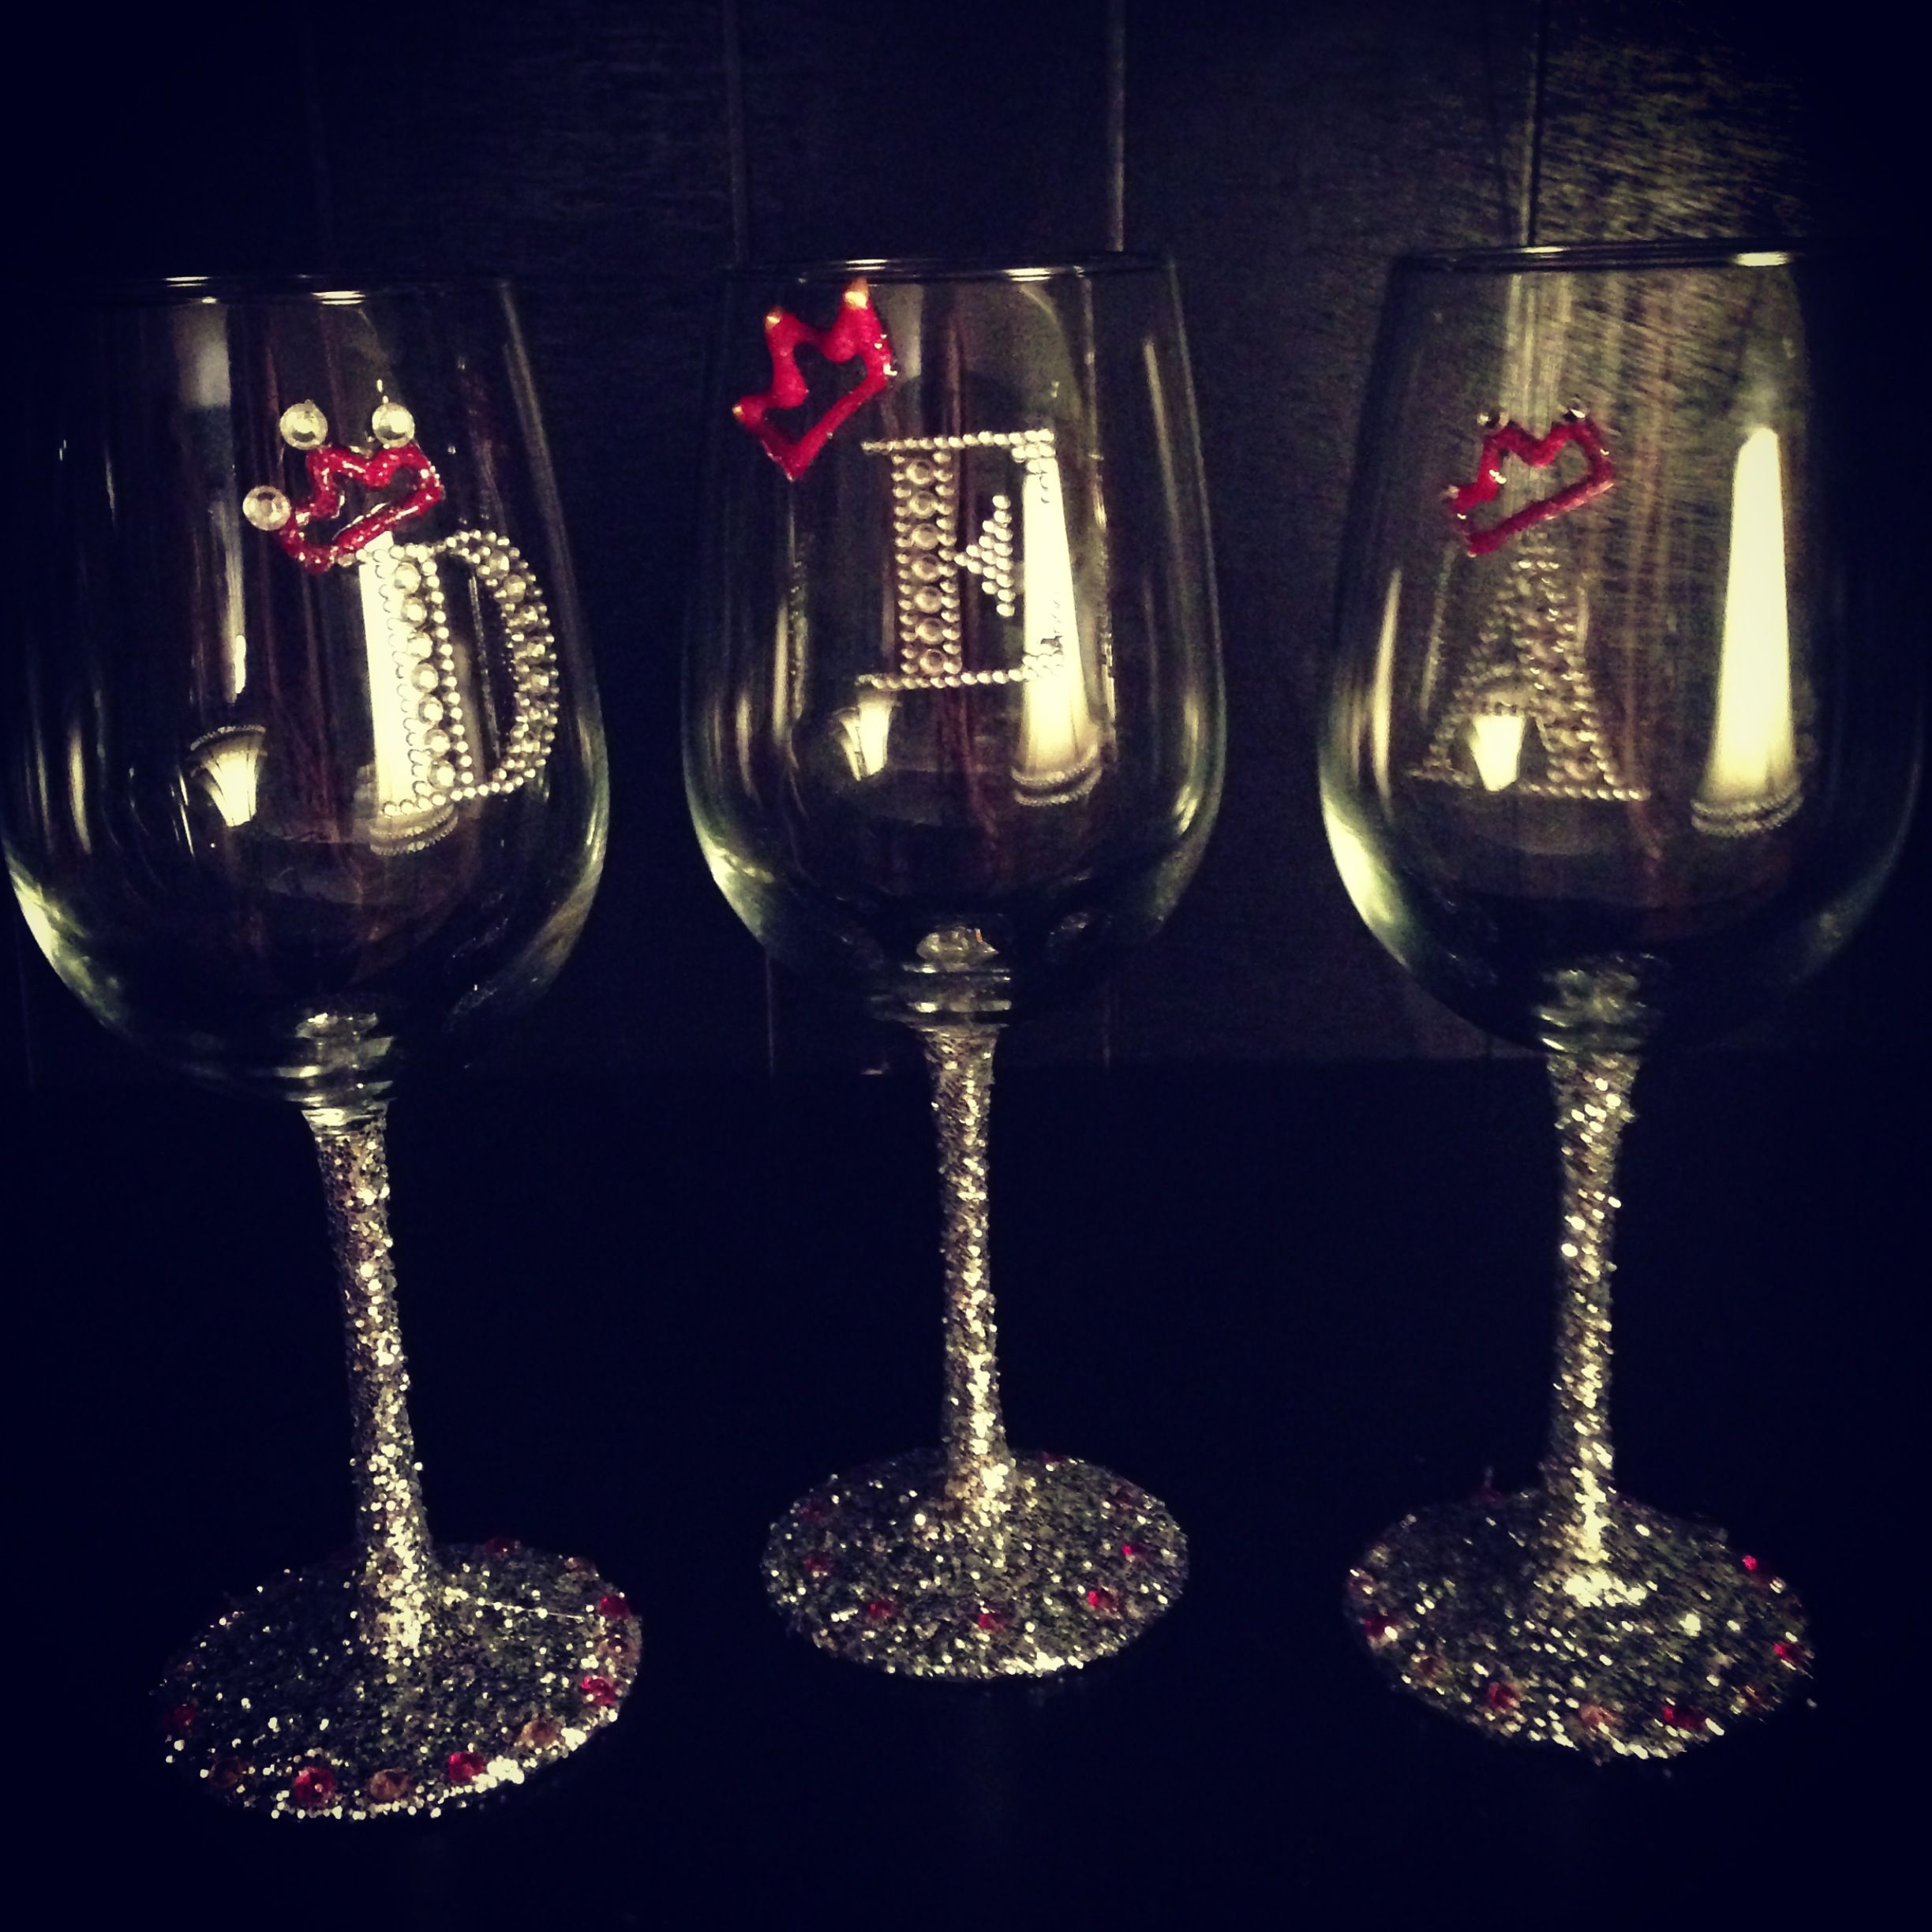 Christmas Decorations With Wine Glasses: Best 25+ Decorated Wine Glasses Ideas On Pinterest